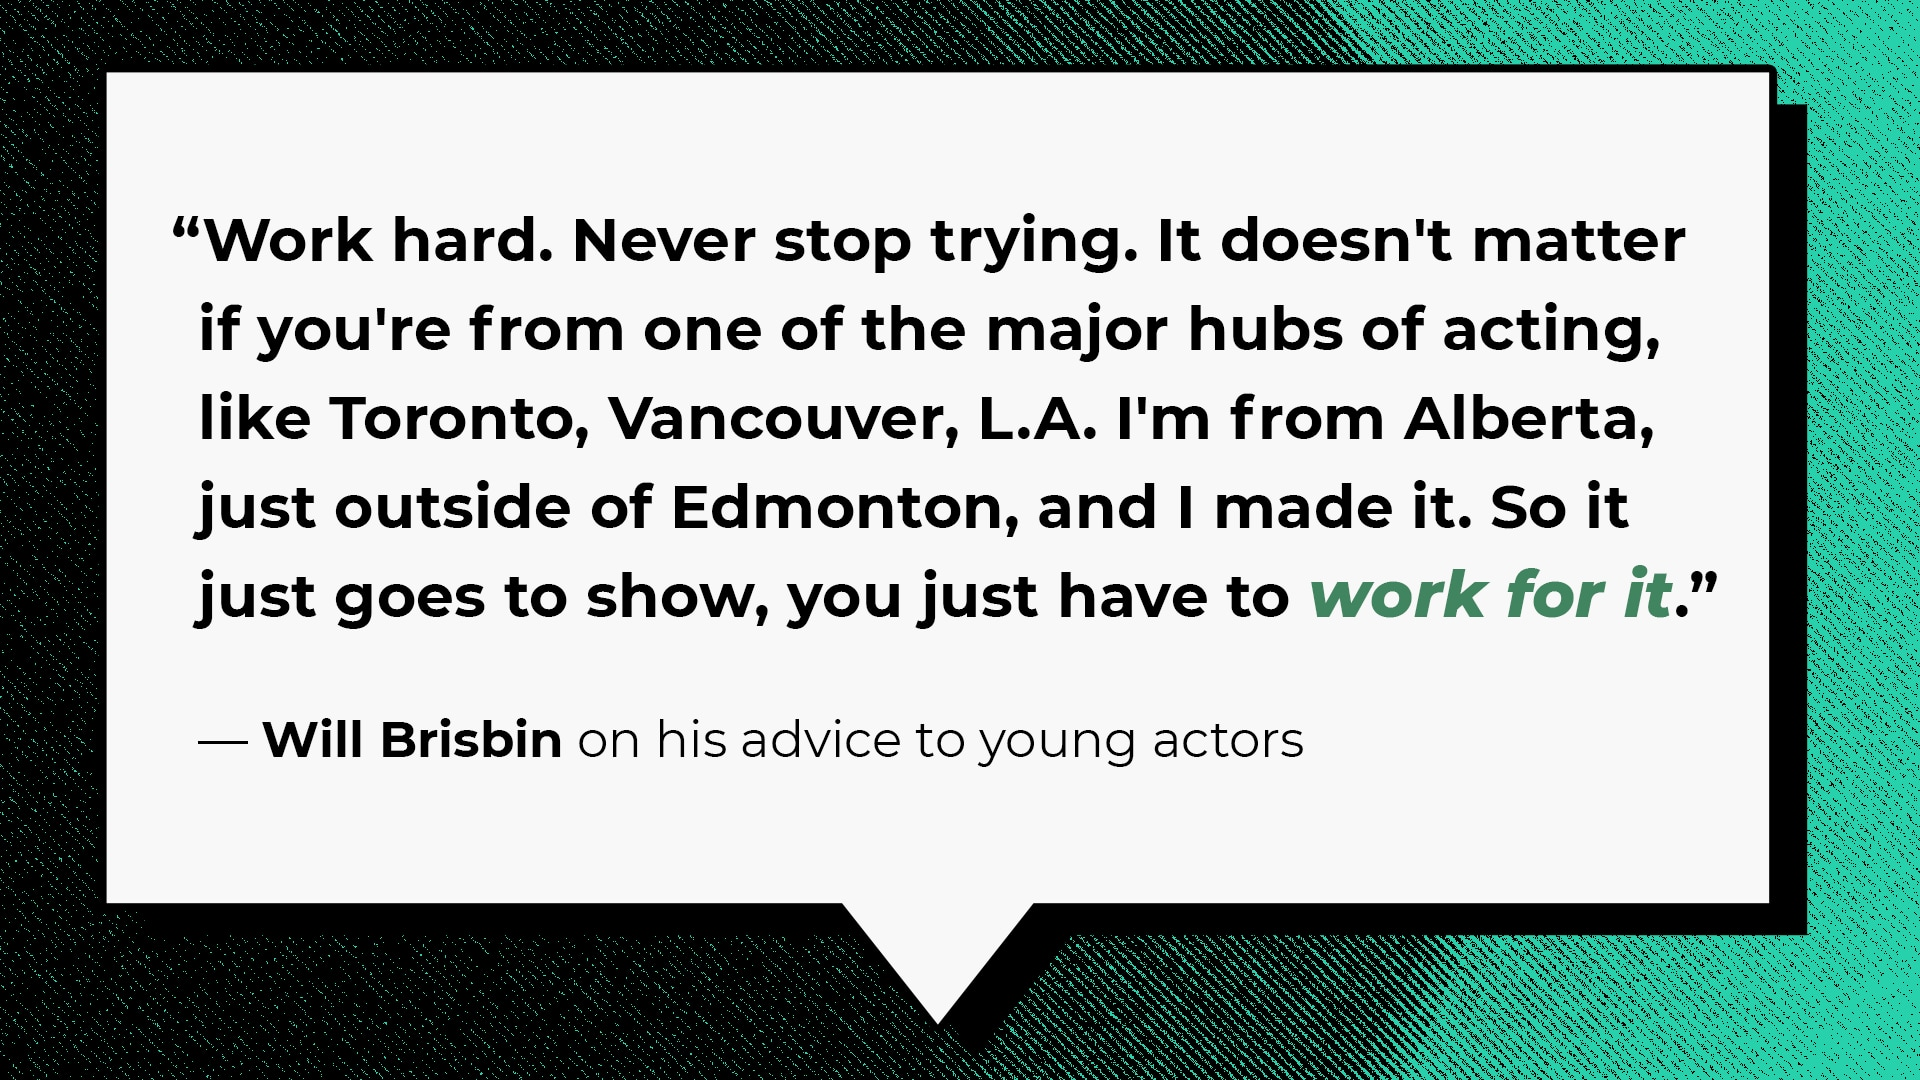 """""""Work hard. Never stop trying. It doesn't matter if you're from one of the major hubs of acting, like Toronto, Vancouver, L.A. I'm from Alberta, just outside of Edmonton, and I made it. So it just goes to show, you just have to work for it."""""""